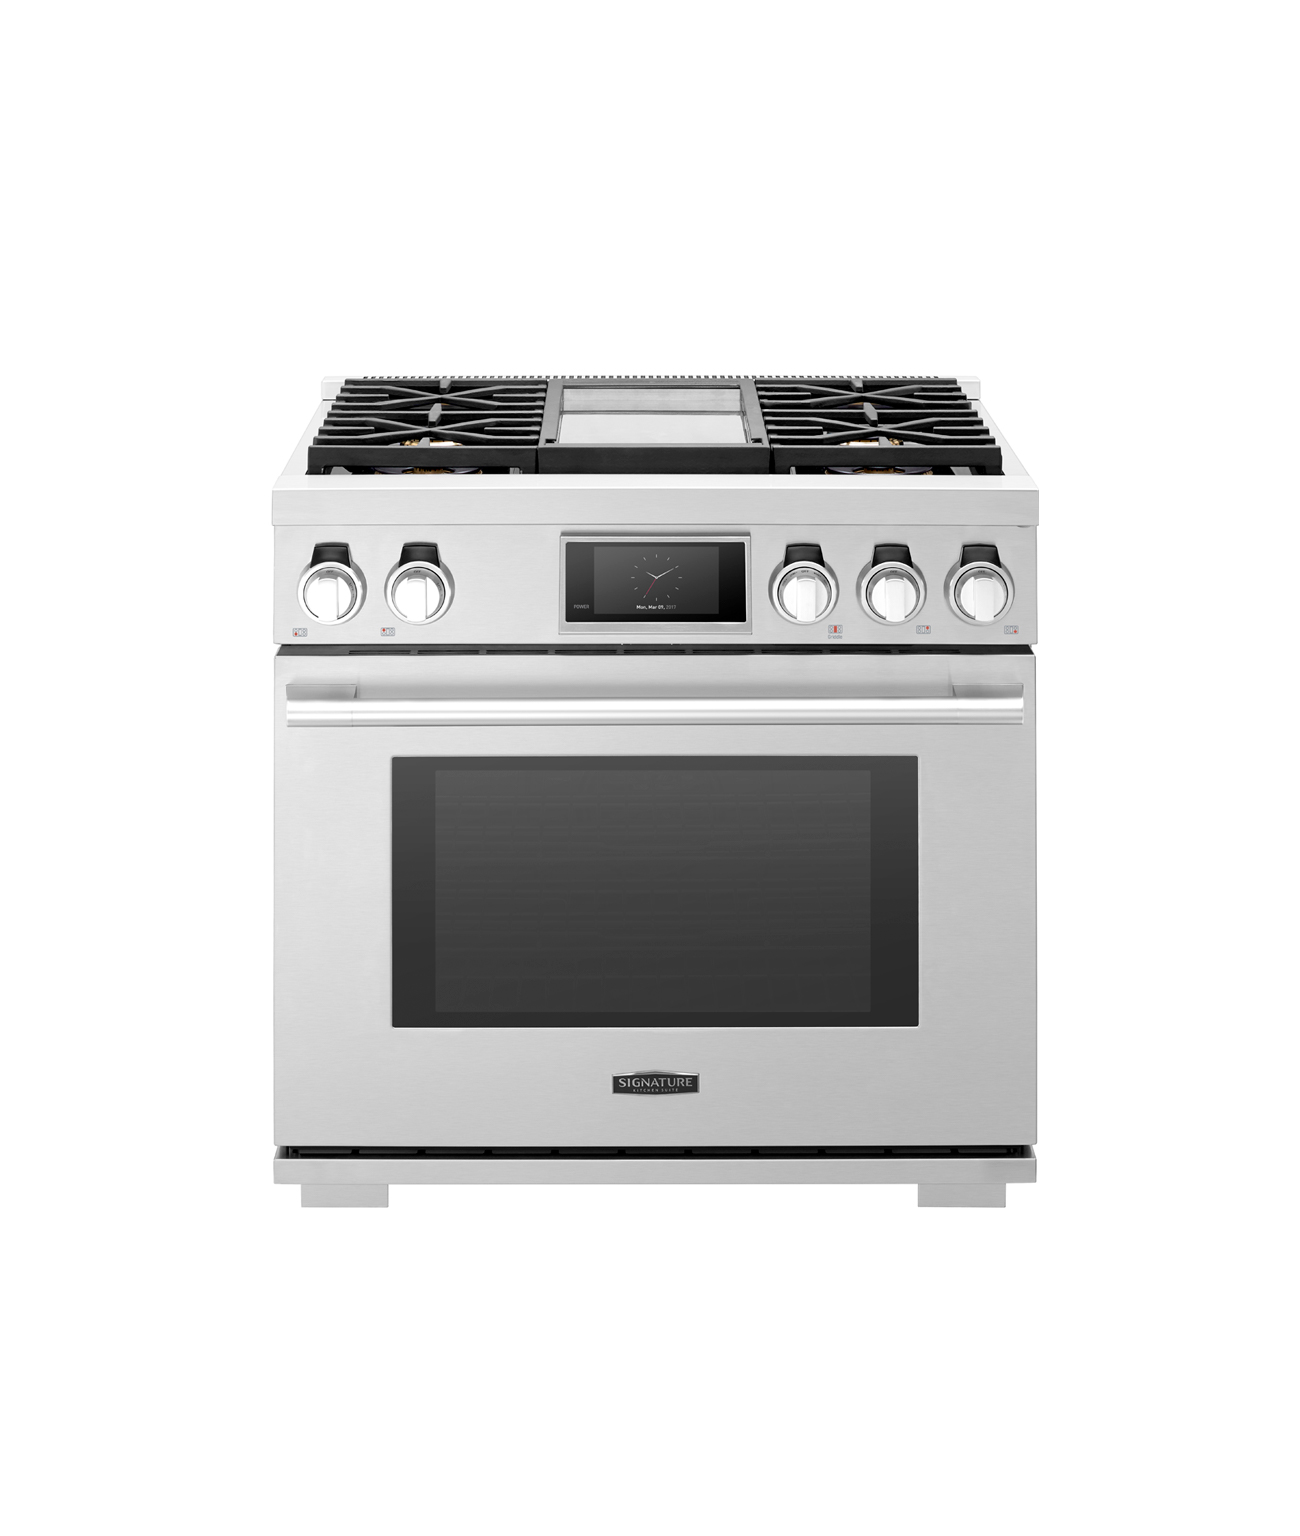 36-inch Gas Range with 4 Burners and Griddle from Signature Kitchen Suite